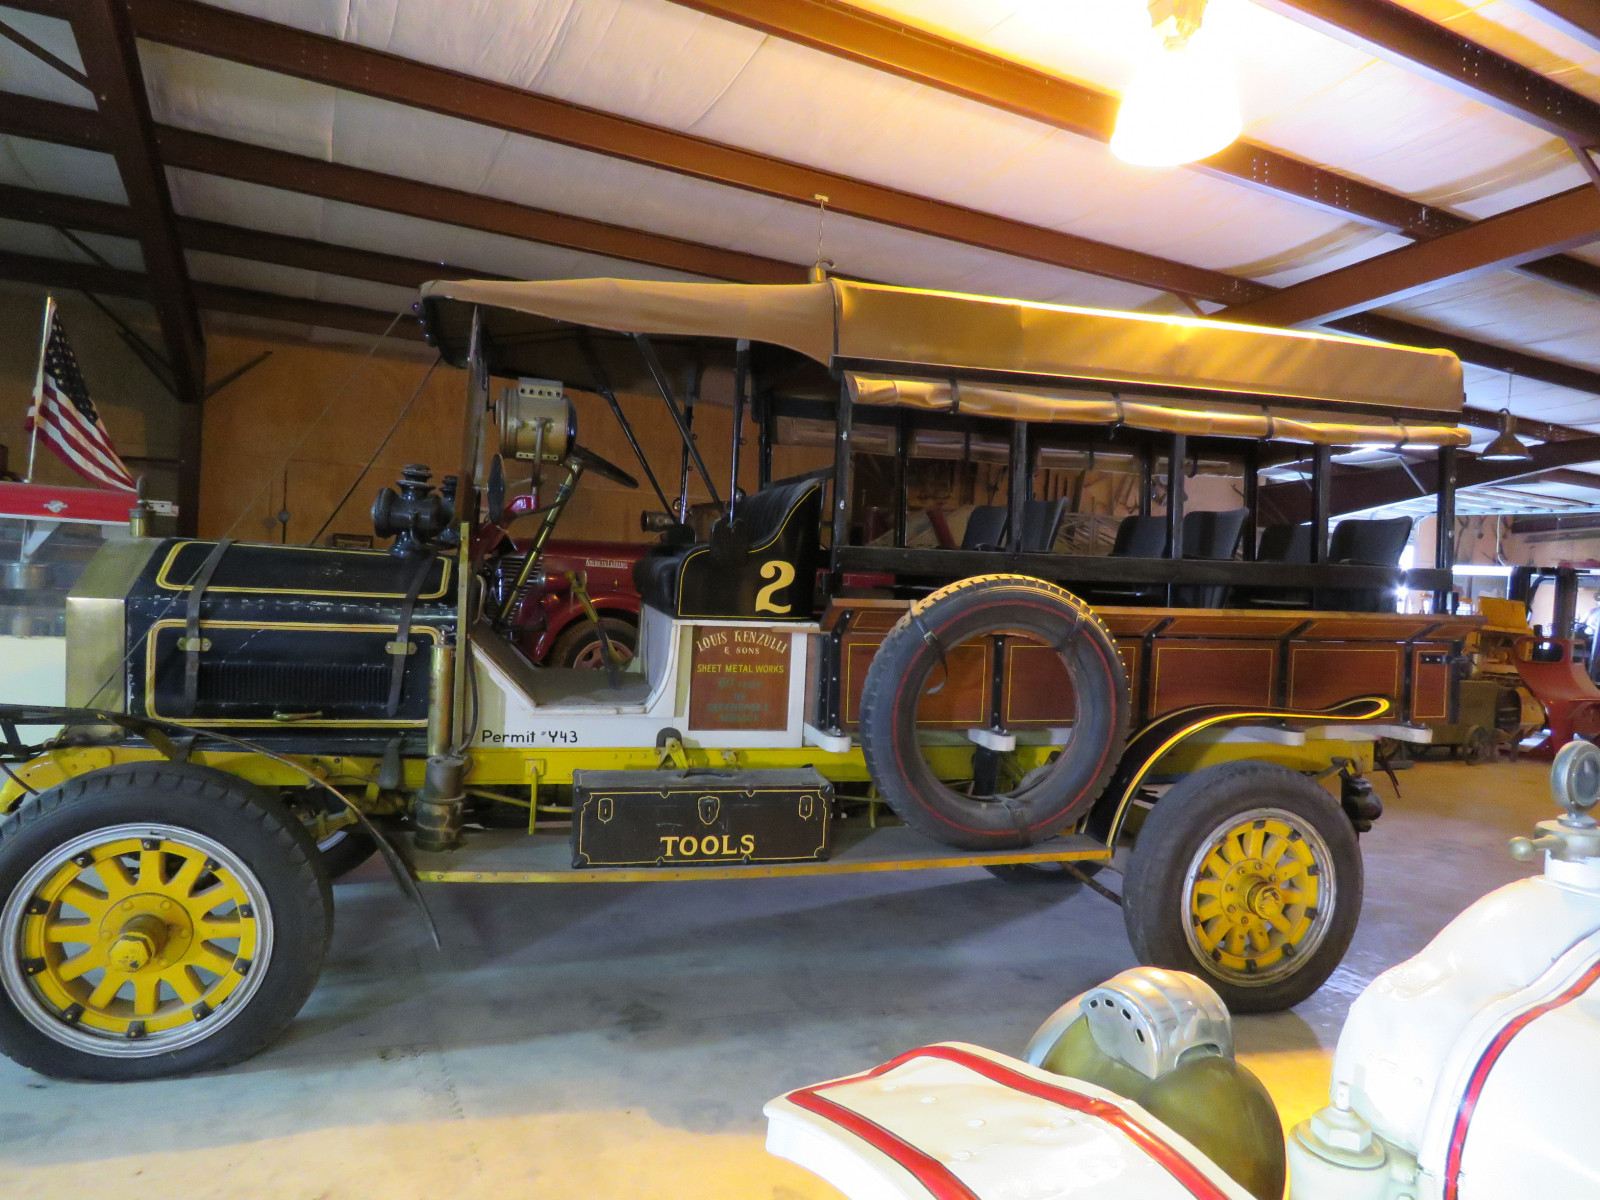 RARE 1910 Knox Open Cab Stakebed Truck - Image 4